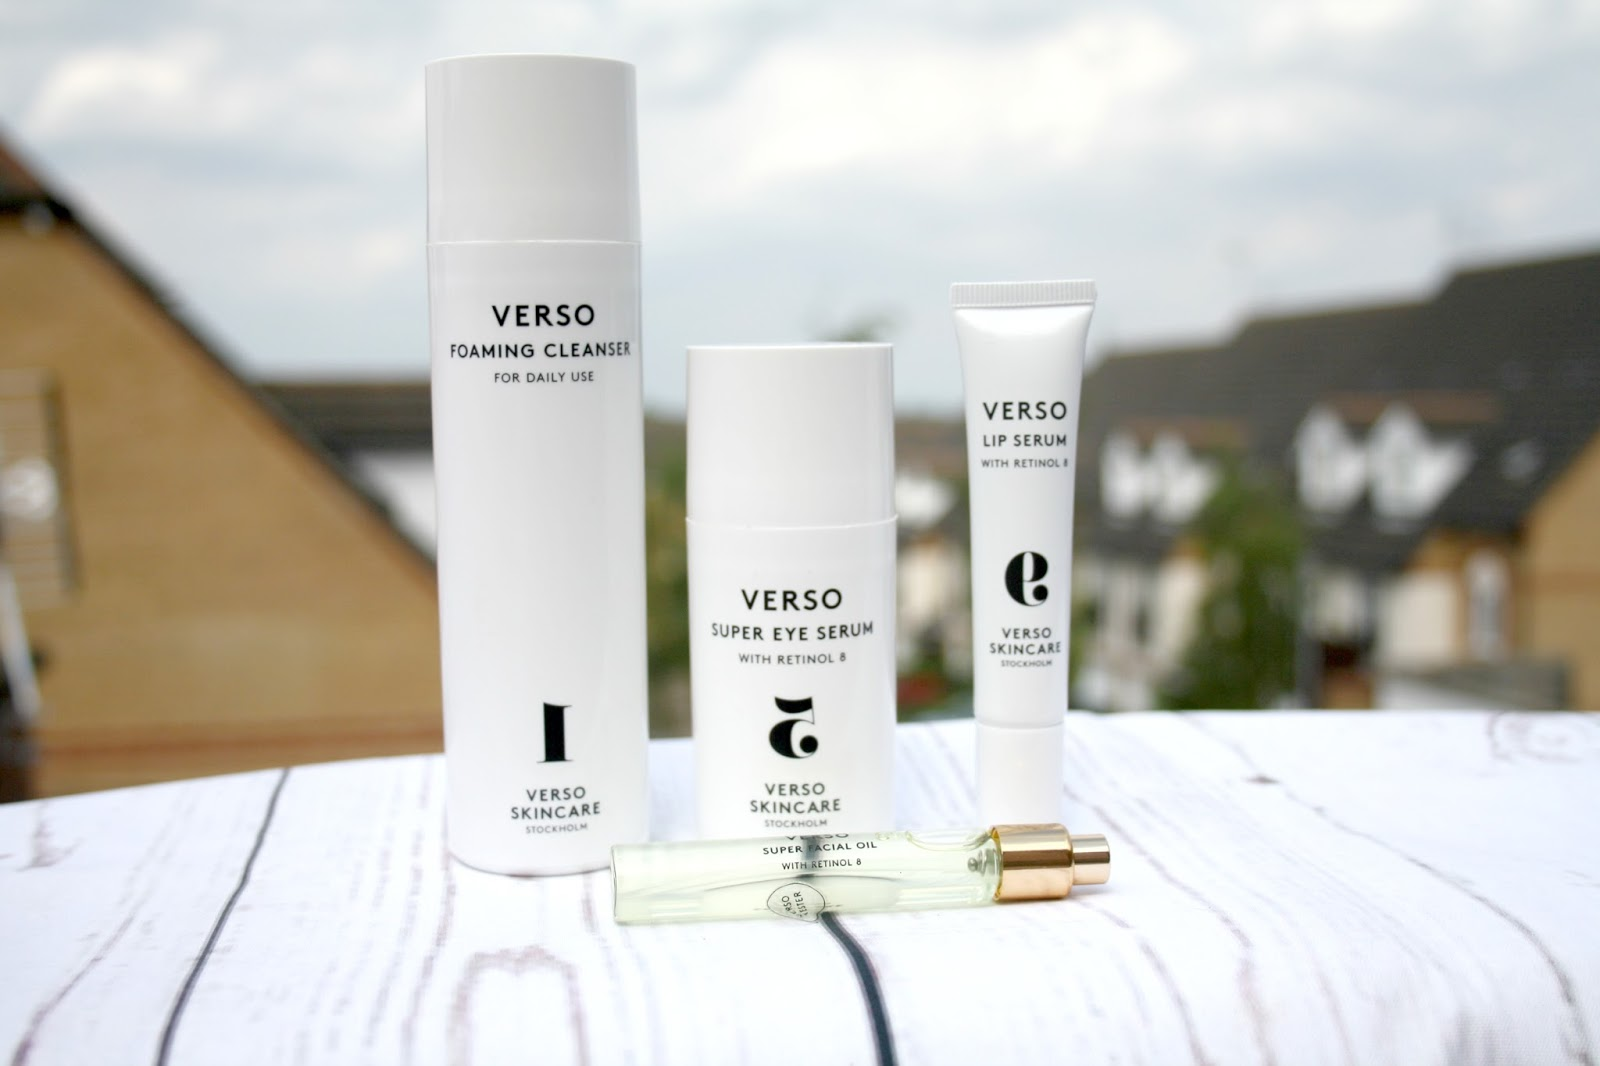 Beautyqueenuk | A UK Beauty and Lifestyle Blog: Verso Skincare